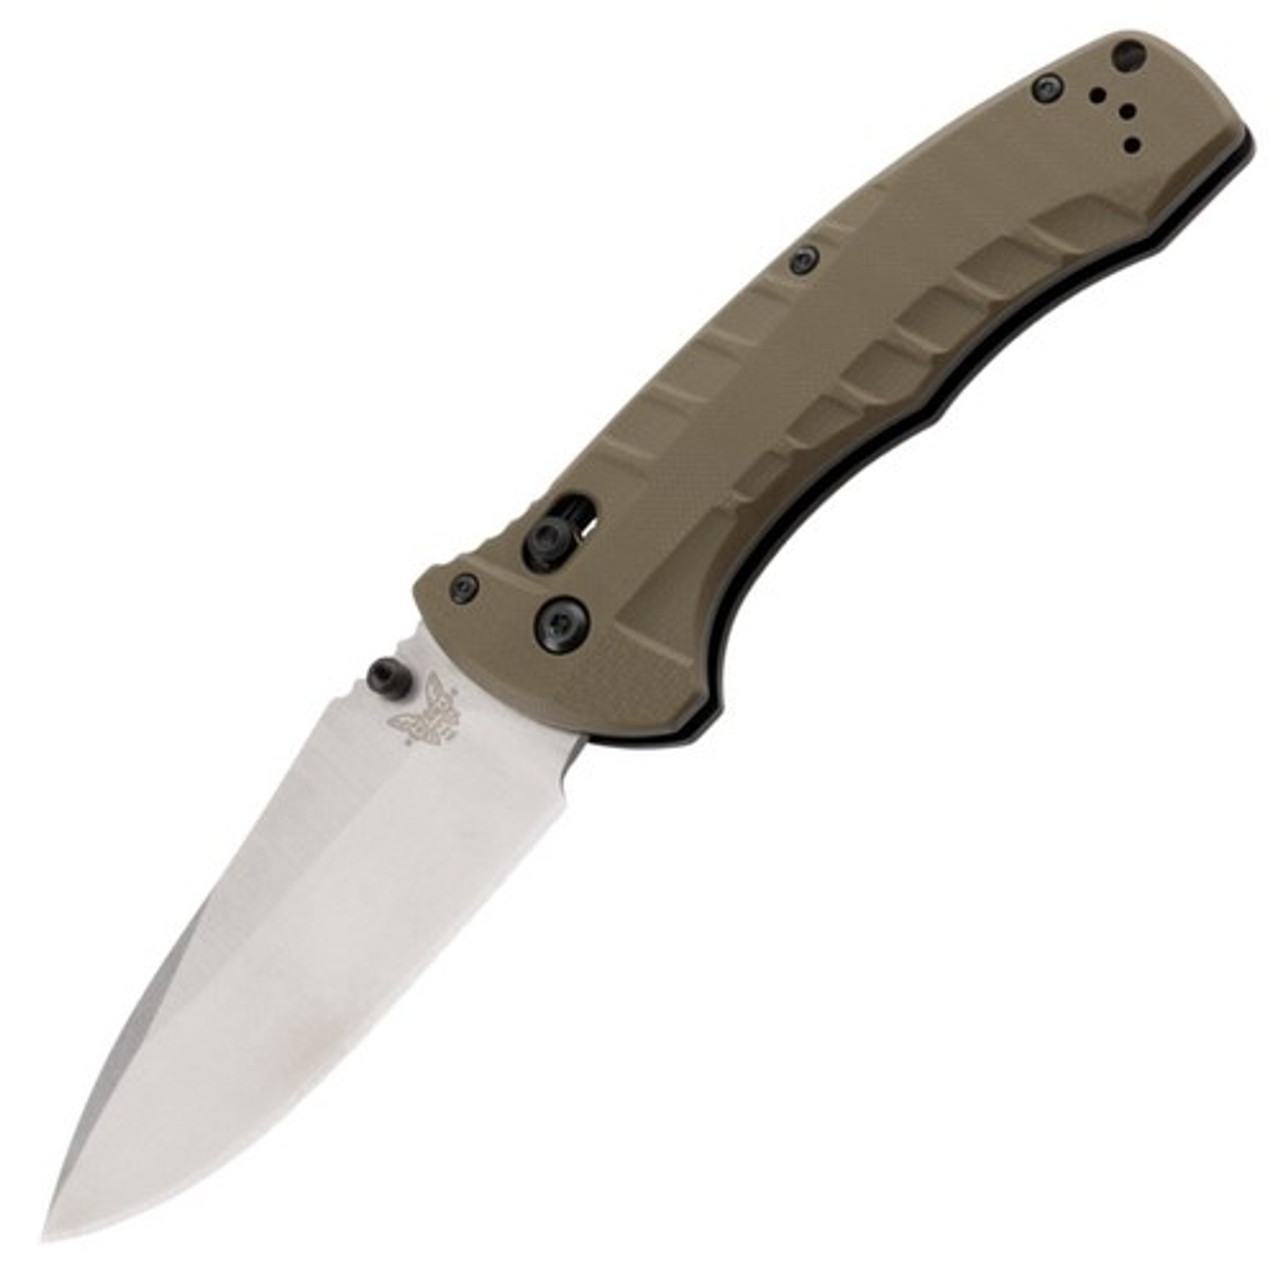 Benchmade 980 Turret